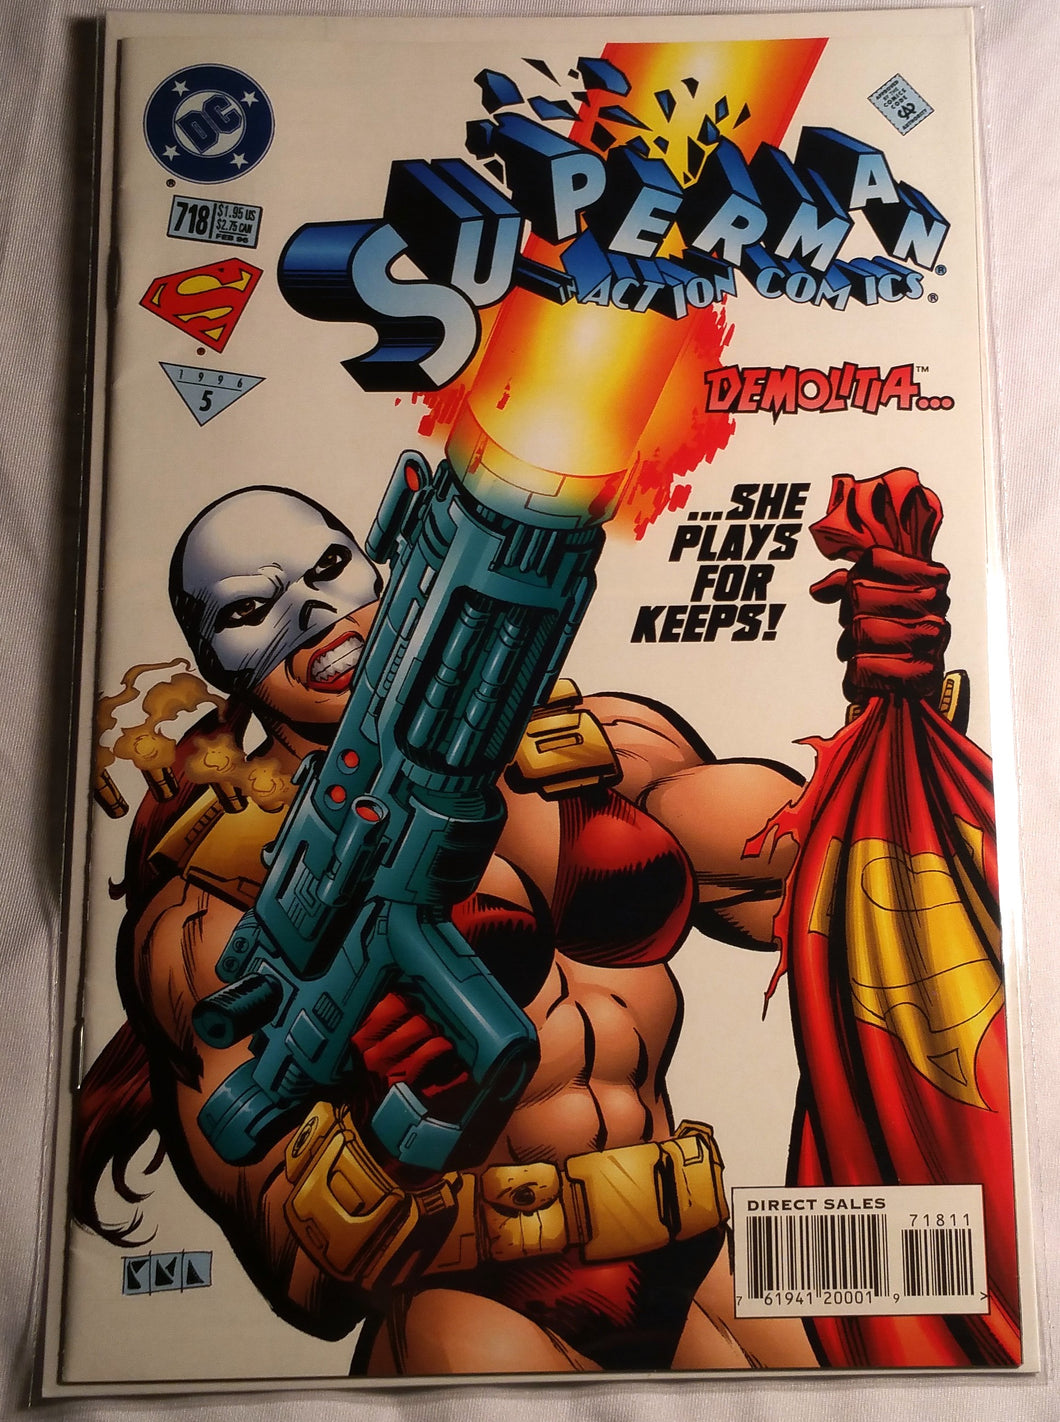 Superman In Action Comics #718 - First Appearance Of Demolitia!